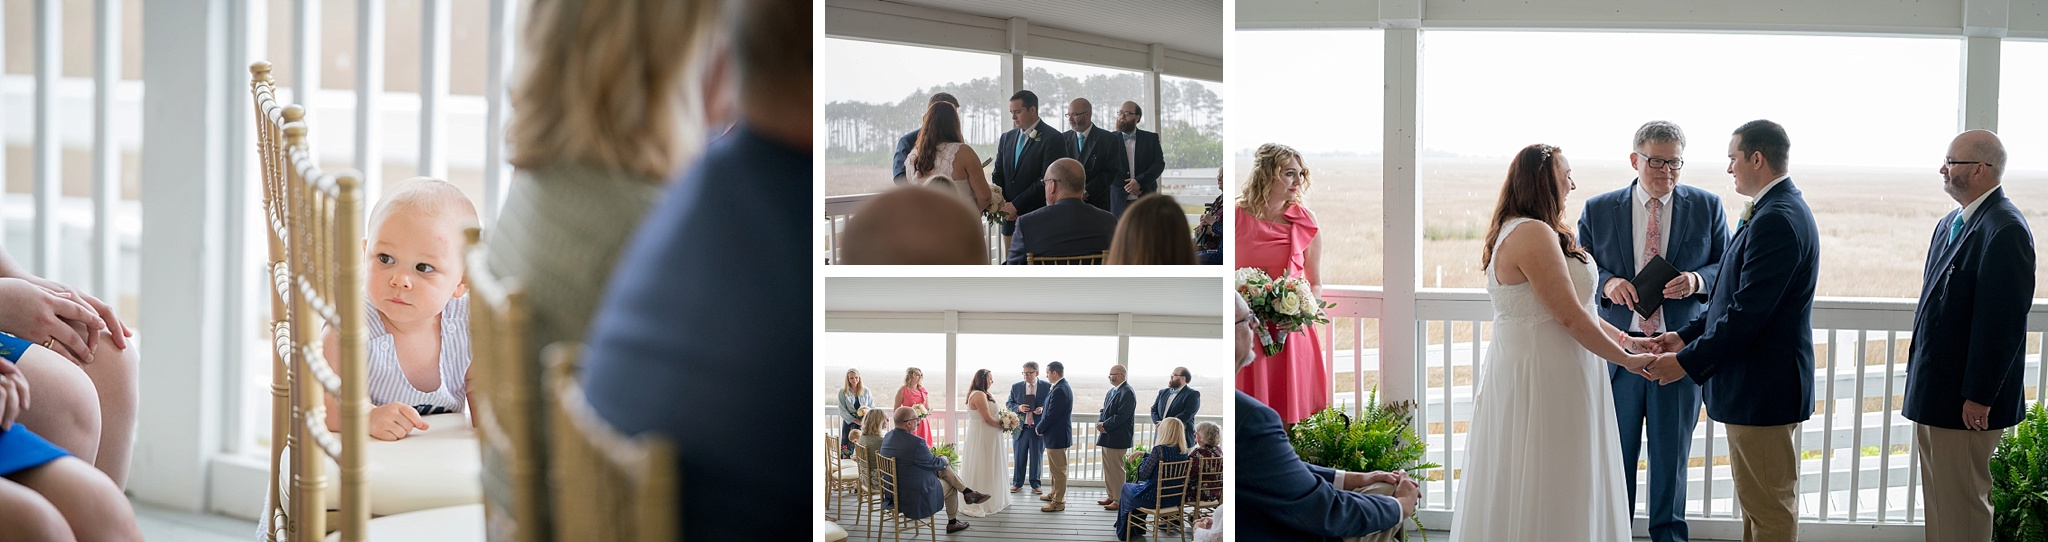 Manteo-NC-Wedding-Photographer-117.jpg